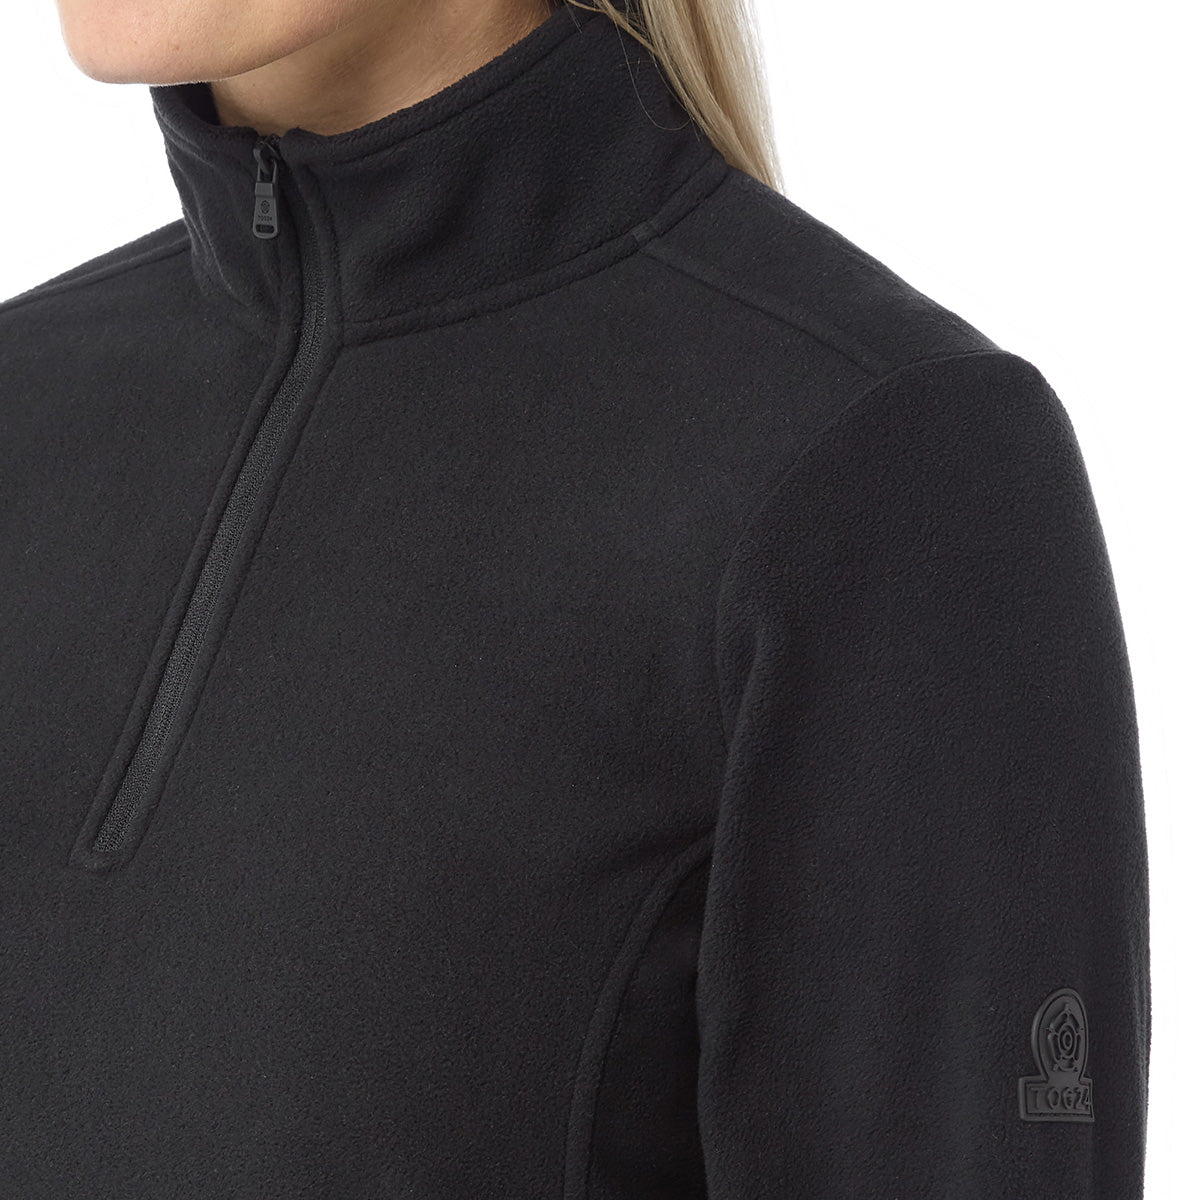 Hecky Womens Fleece Zipneck - Black image 4